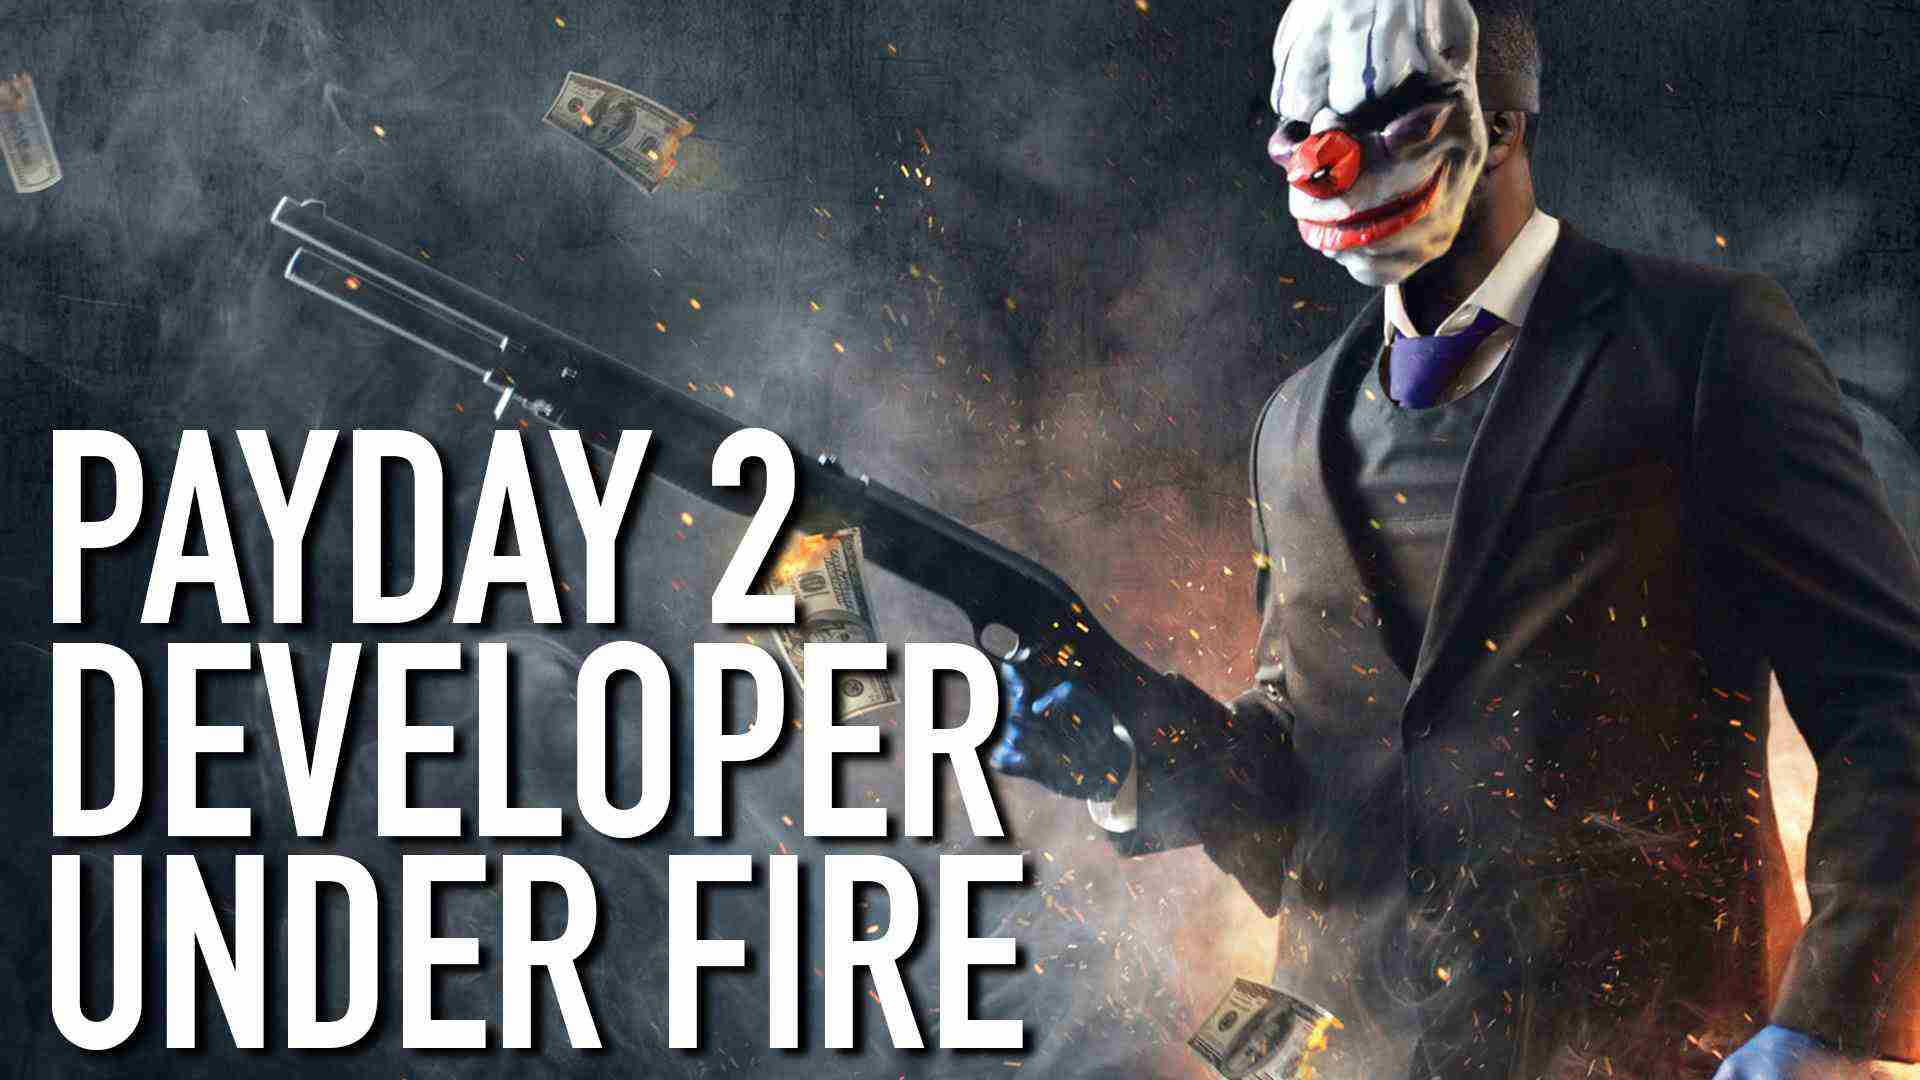 Payday 2 Dev Under Fire – Inside Gaming Daily